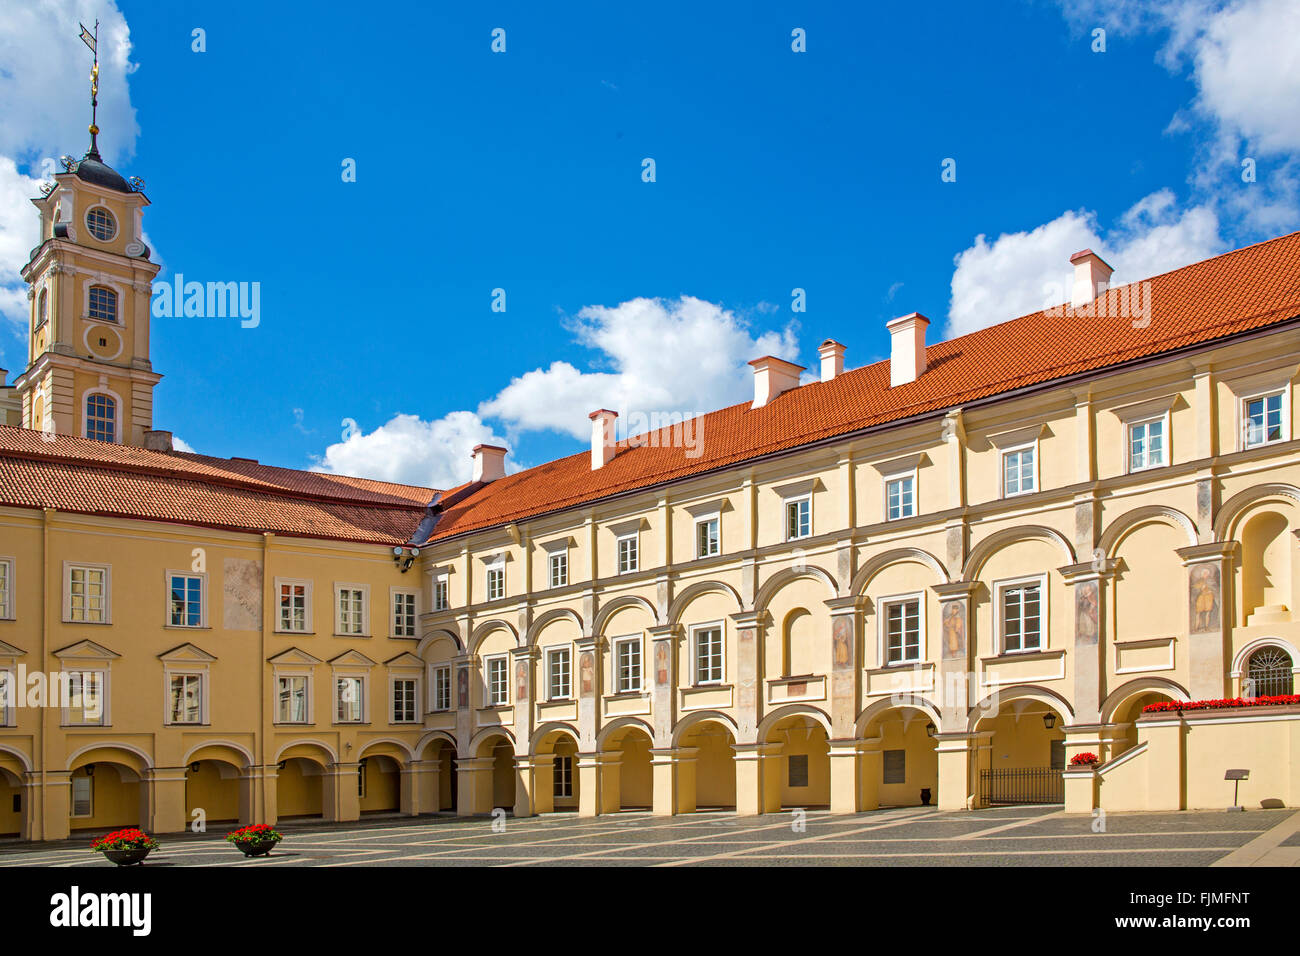 geography / travel, Lithuania, Vilnius, university, Sarkos Court, Additional-Rights-Clearance-Info-Not-Available - Stock Image